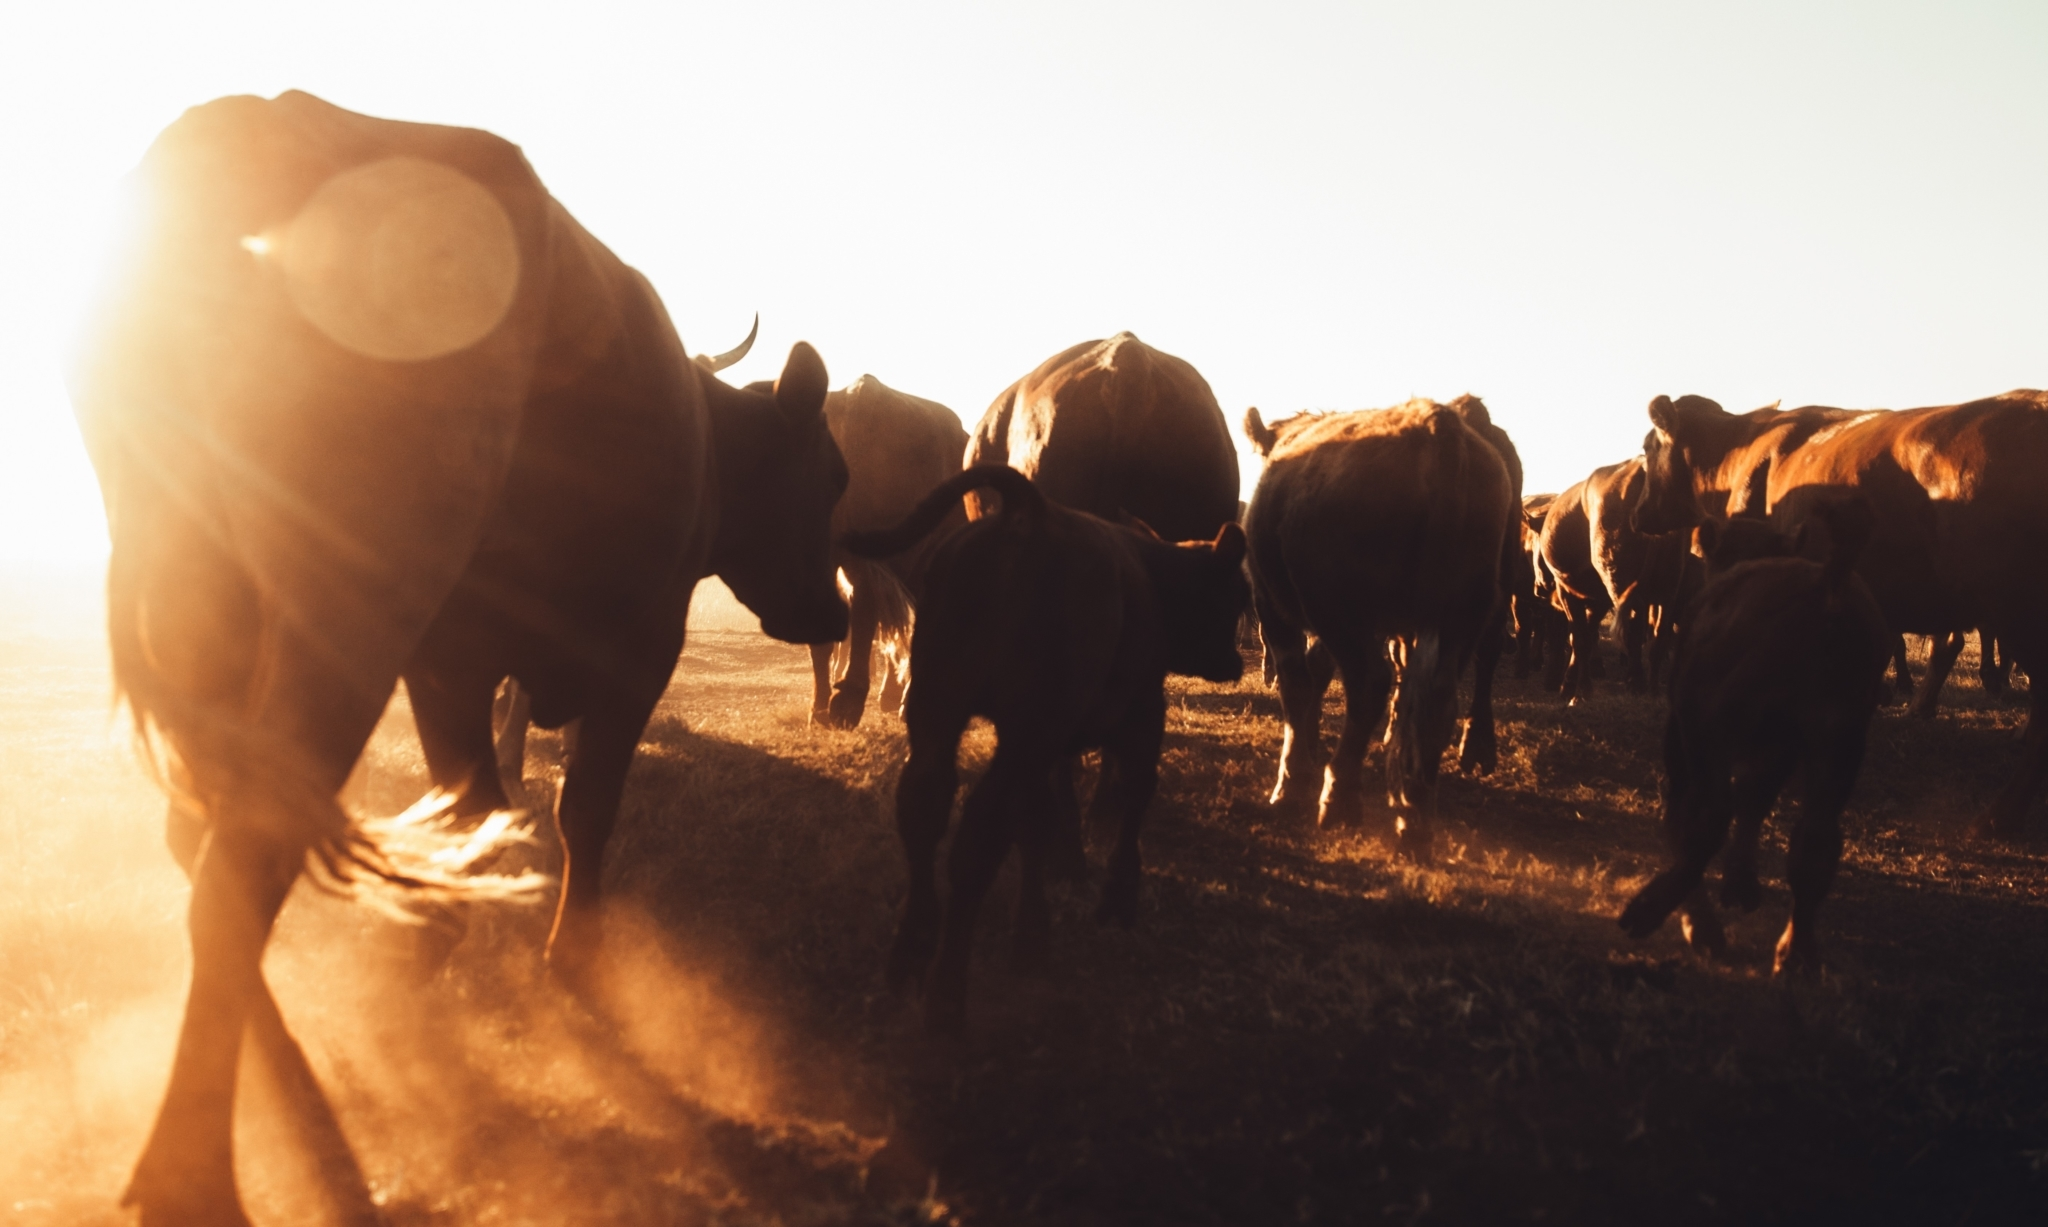 Cattle blowing up dust on rural farmland in sunset stock photo